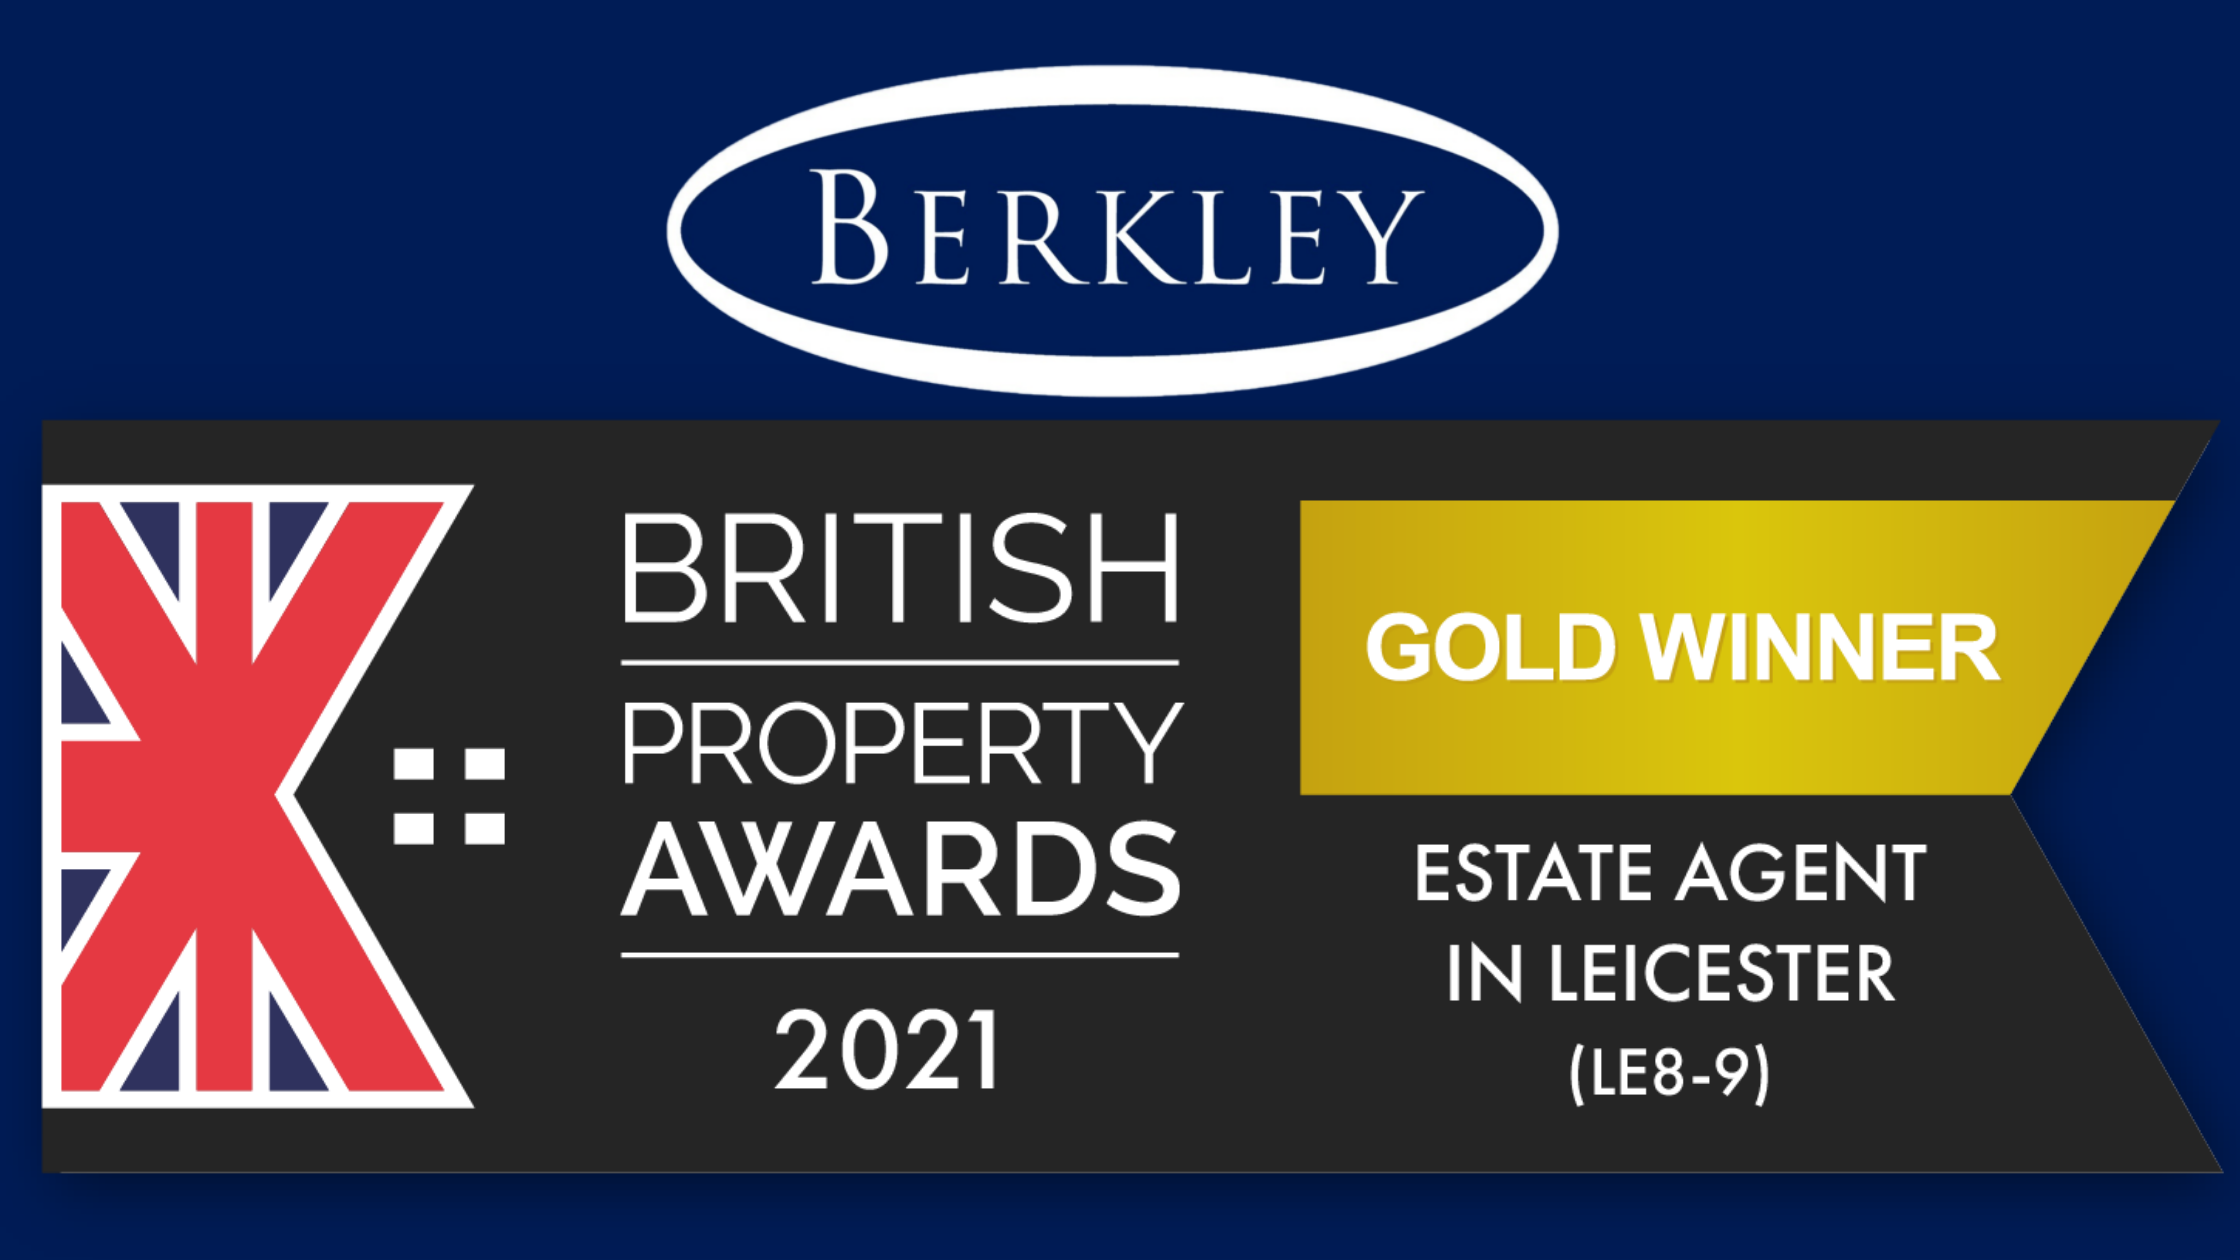 Berkley Win Gold at British Property Awards for Best Estate Agent in Leicester (LE8-9)